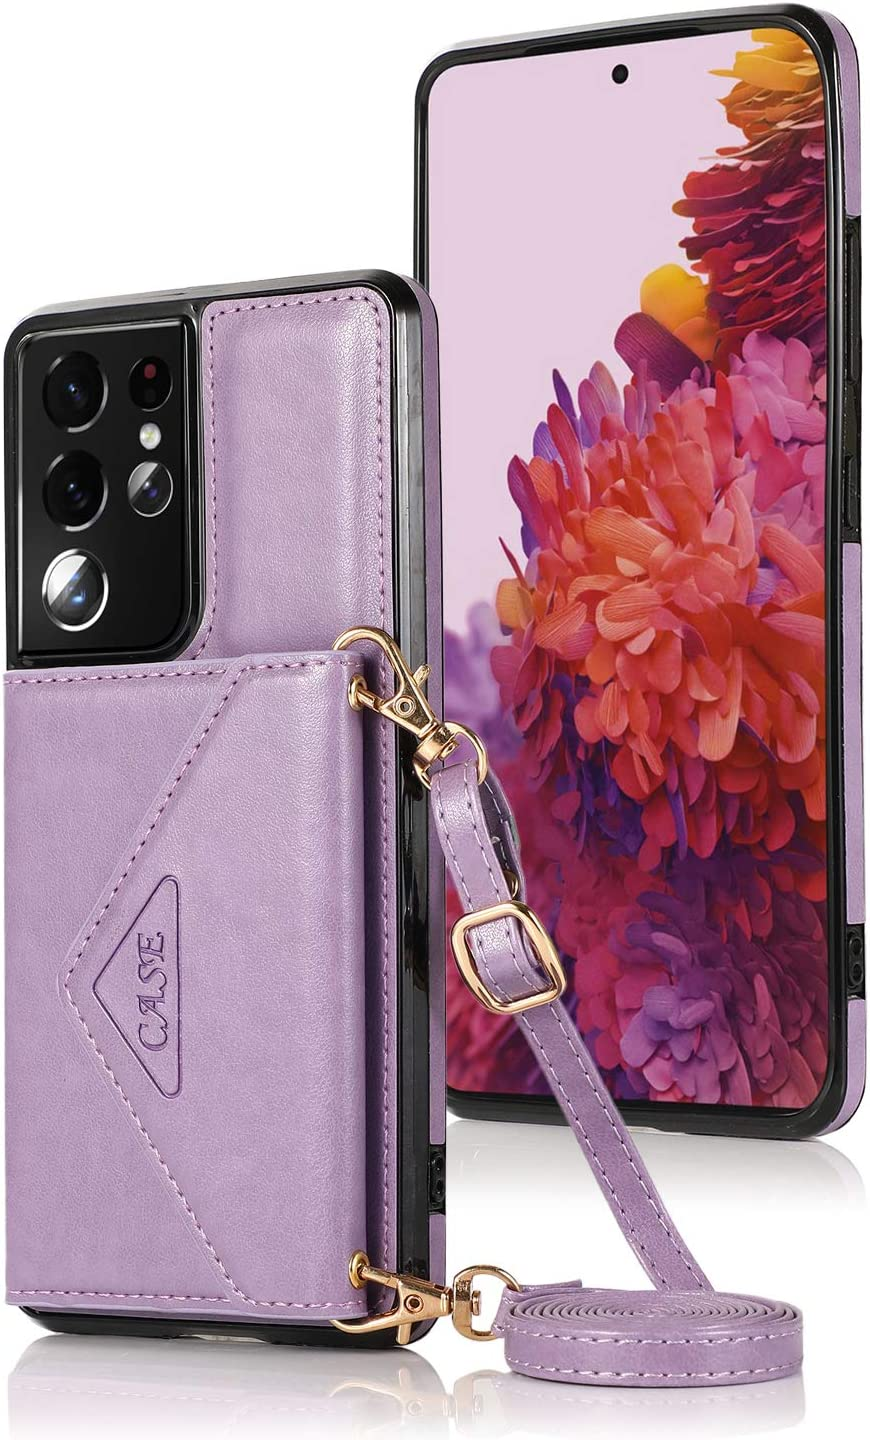 LUVI for Galaxy S21 Ultra Card Holder Wallet Case with Crossbody Neck Strap Lanyard Handbag Wrist Strap PU Leather Flip Cover with Credit Card Slot Kickstands Stand Case for Galaxy S21 Ultra Purple